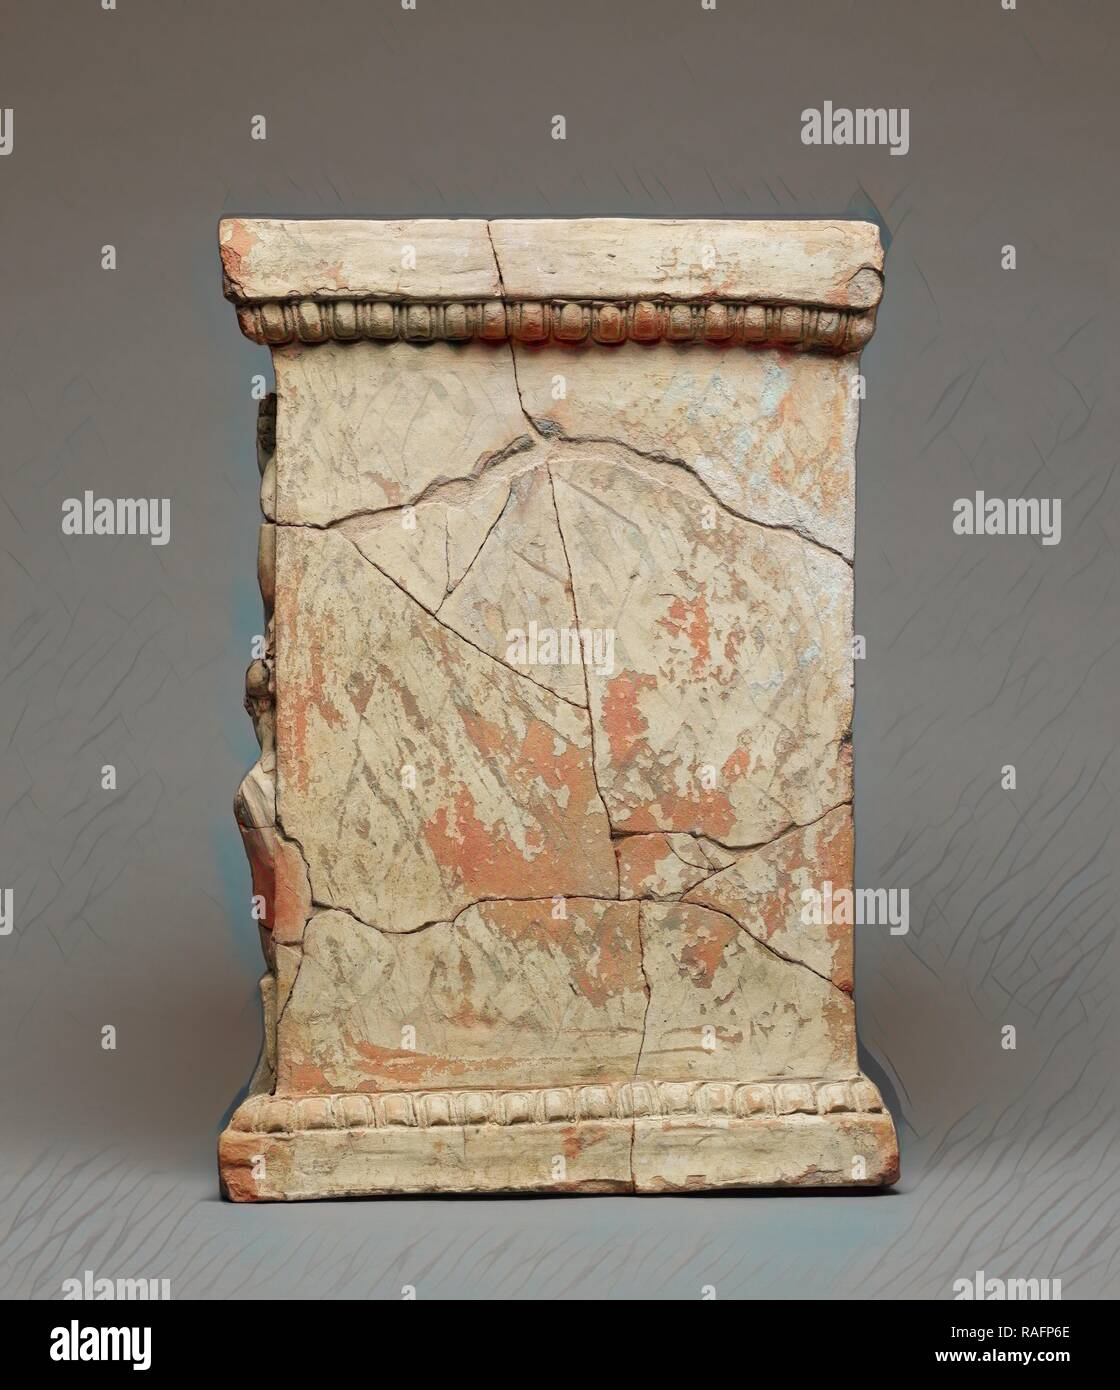 Altar with the Myth of Adonis, Calabria, Italy, 425 - 375 B.C, Terracotta with yellowish diluted clay, white slip and reimagined - Stock Image